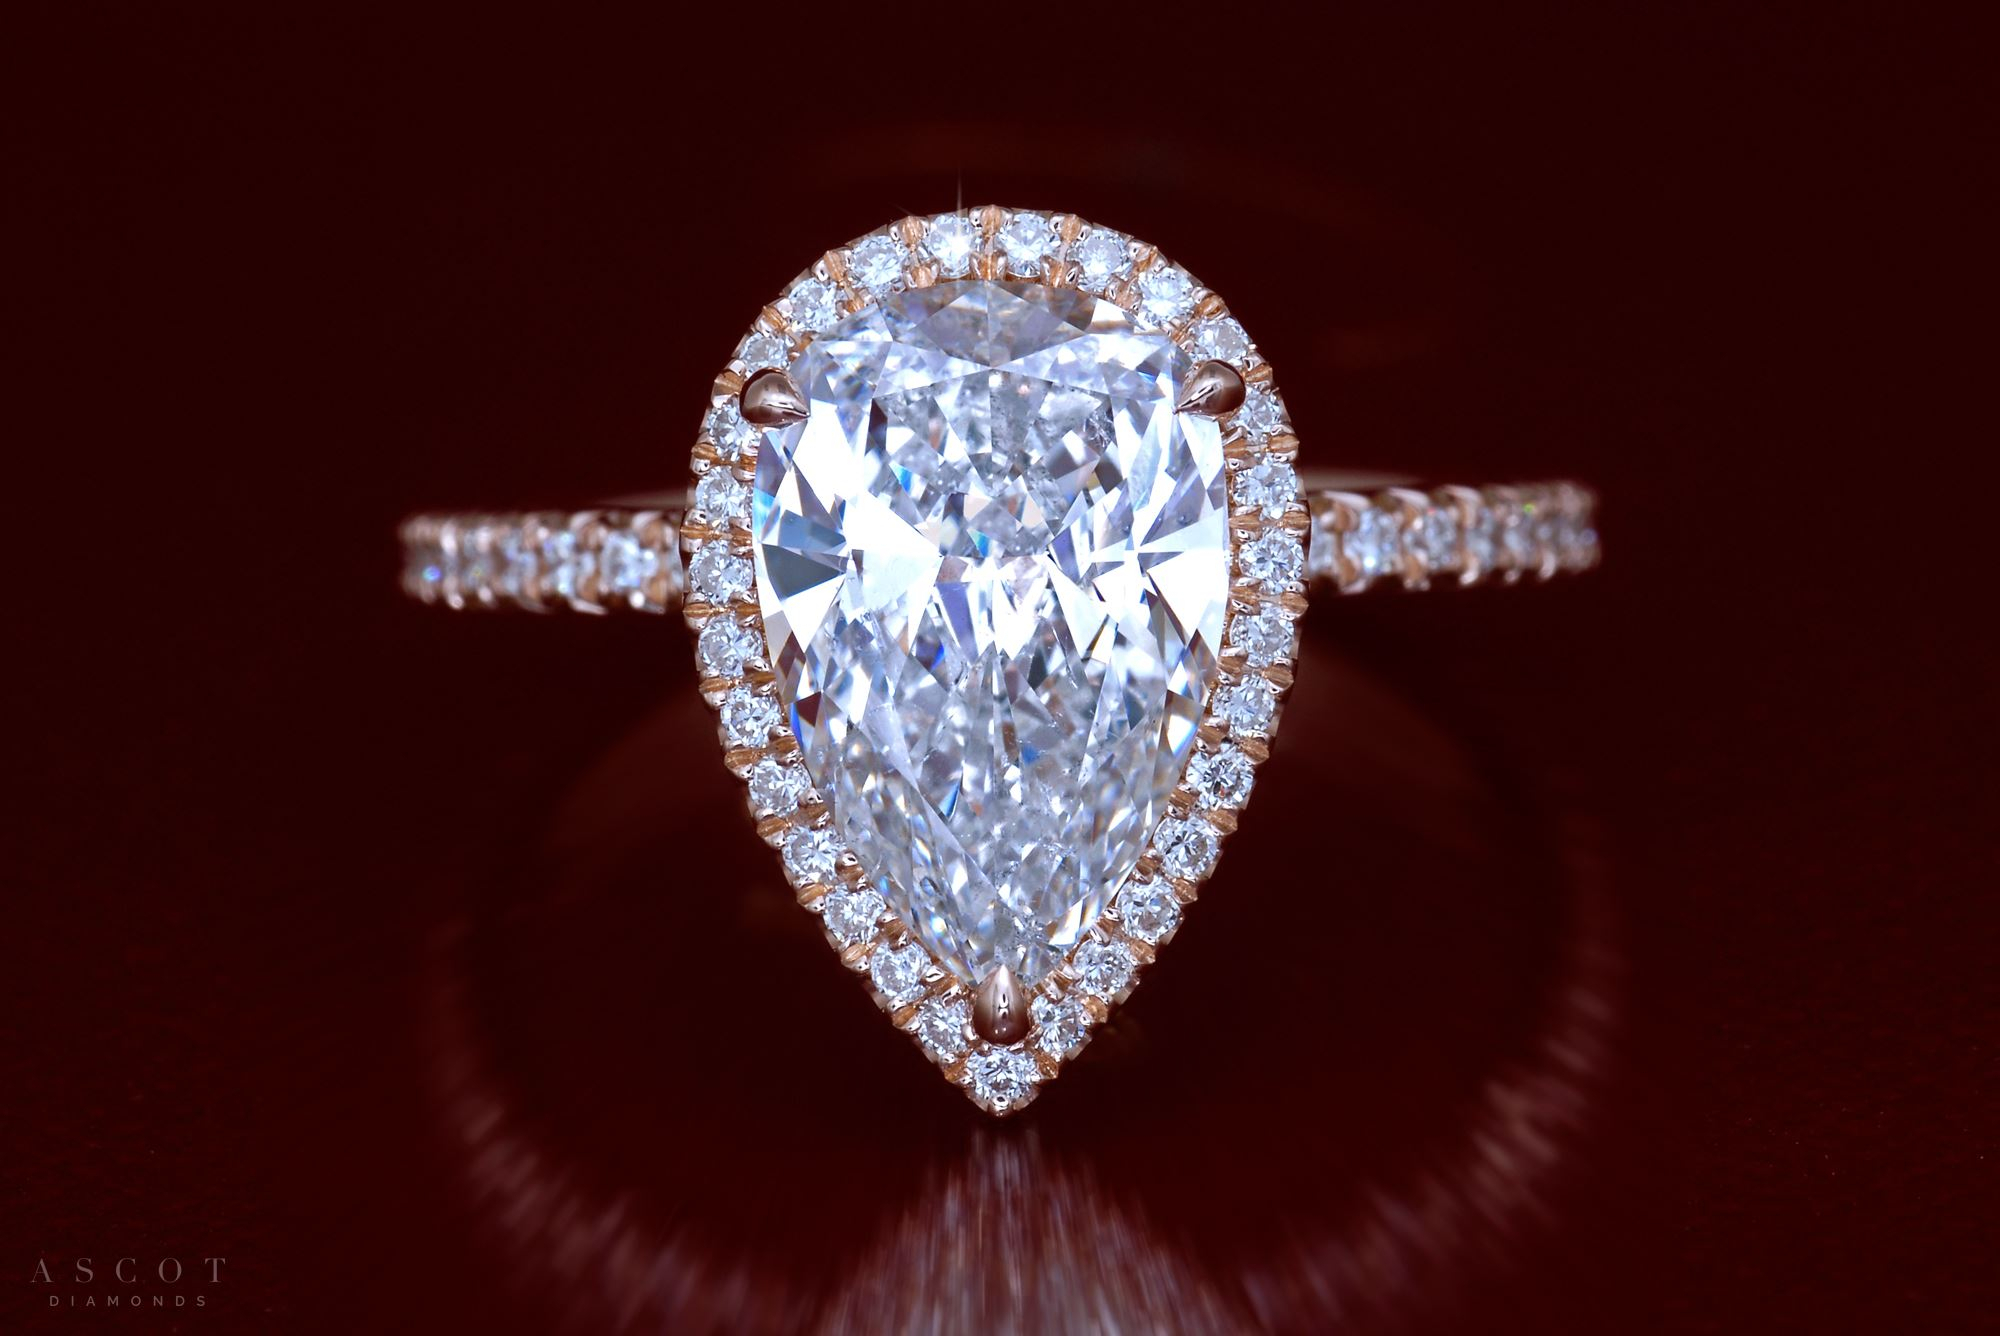 Rose Gold Three Carat Pear Shaped Diamond Engagement Ring Throughout Tryst Pear Shaped Diamond Engagement Rings (View 5 of 25)